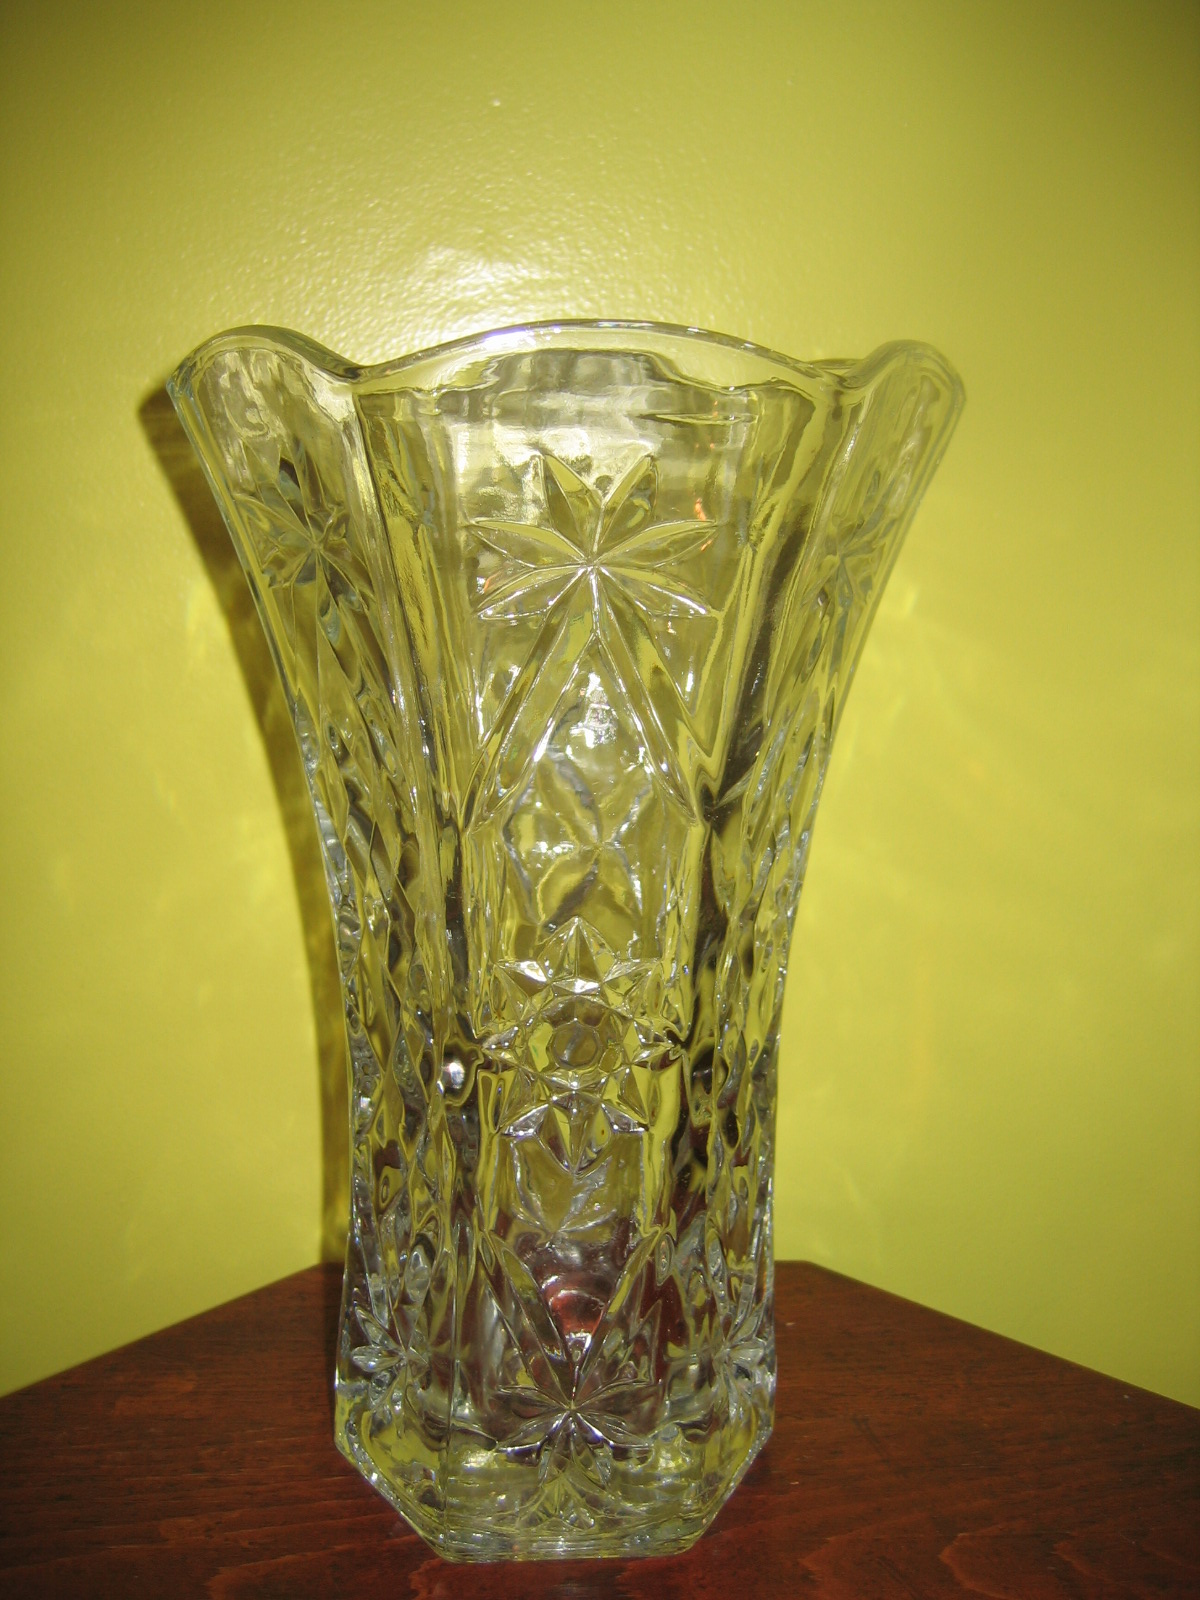 vintage clear cut glass flower vase item 1022 for sale